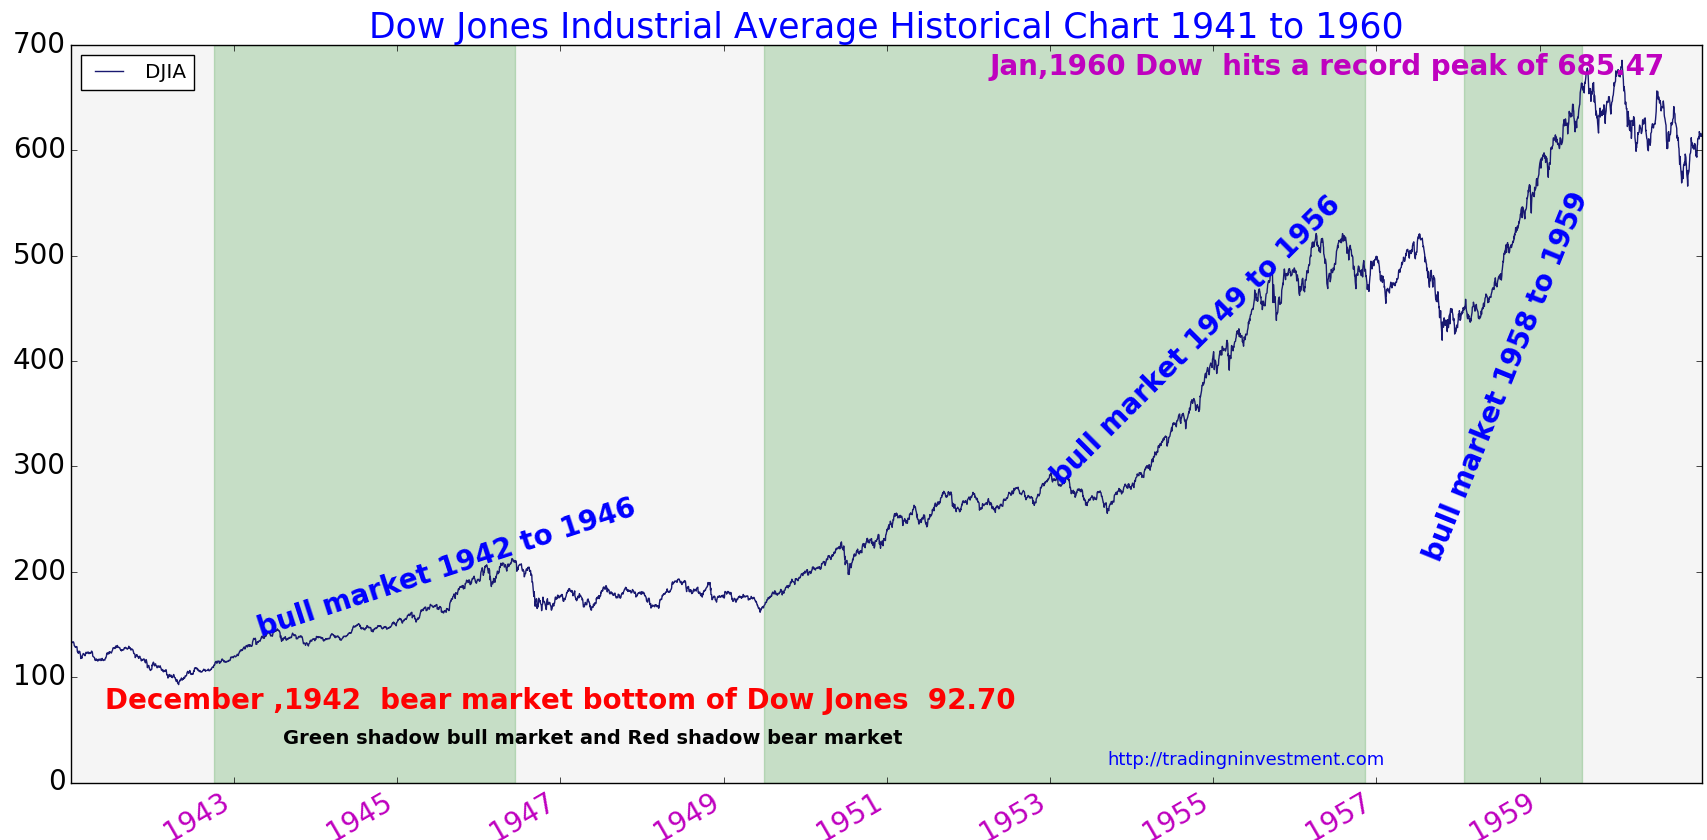 Dow jones history chart 1941 to 1960 investment and trading